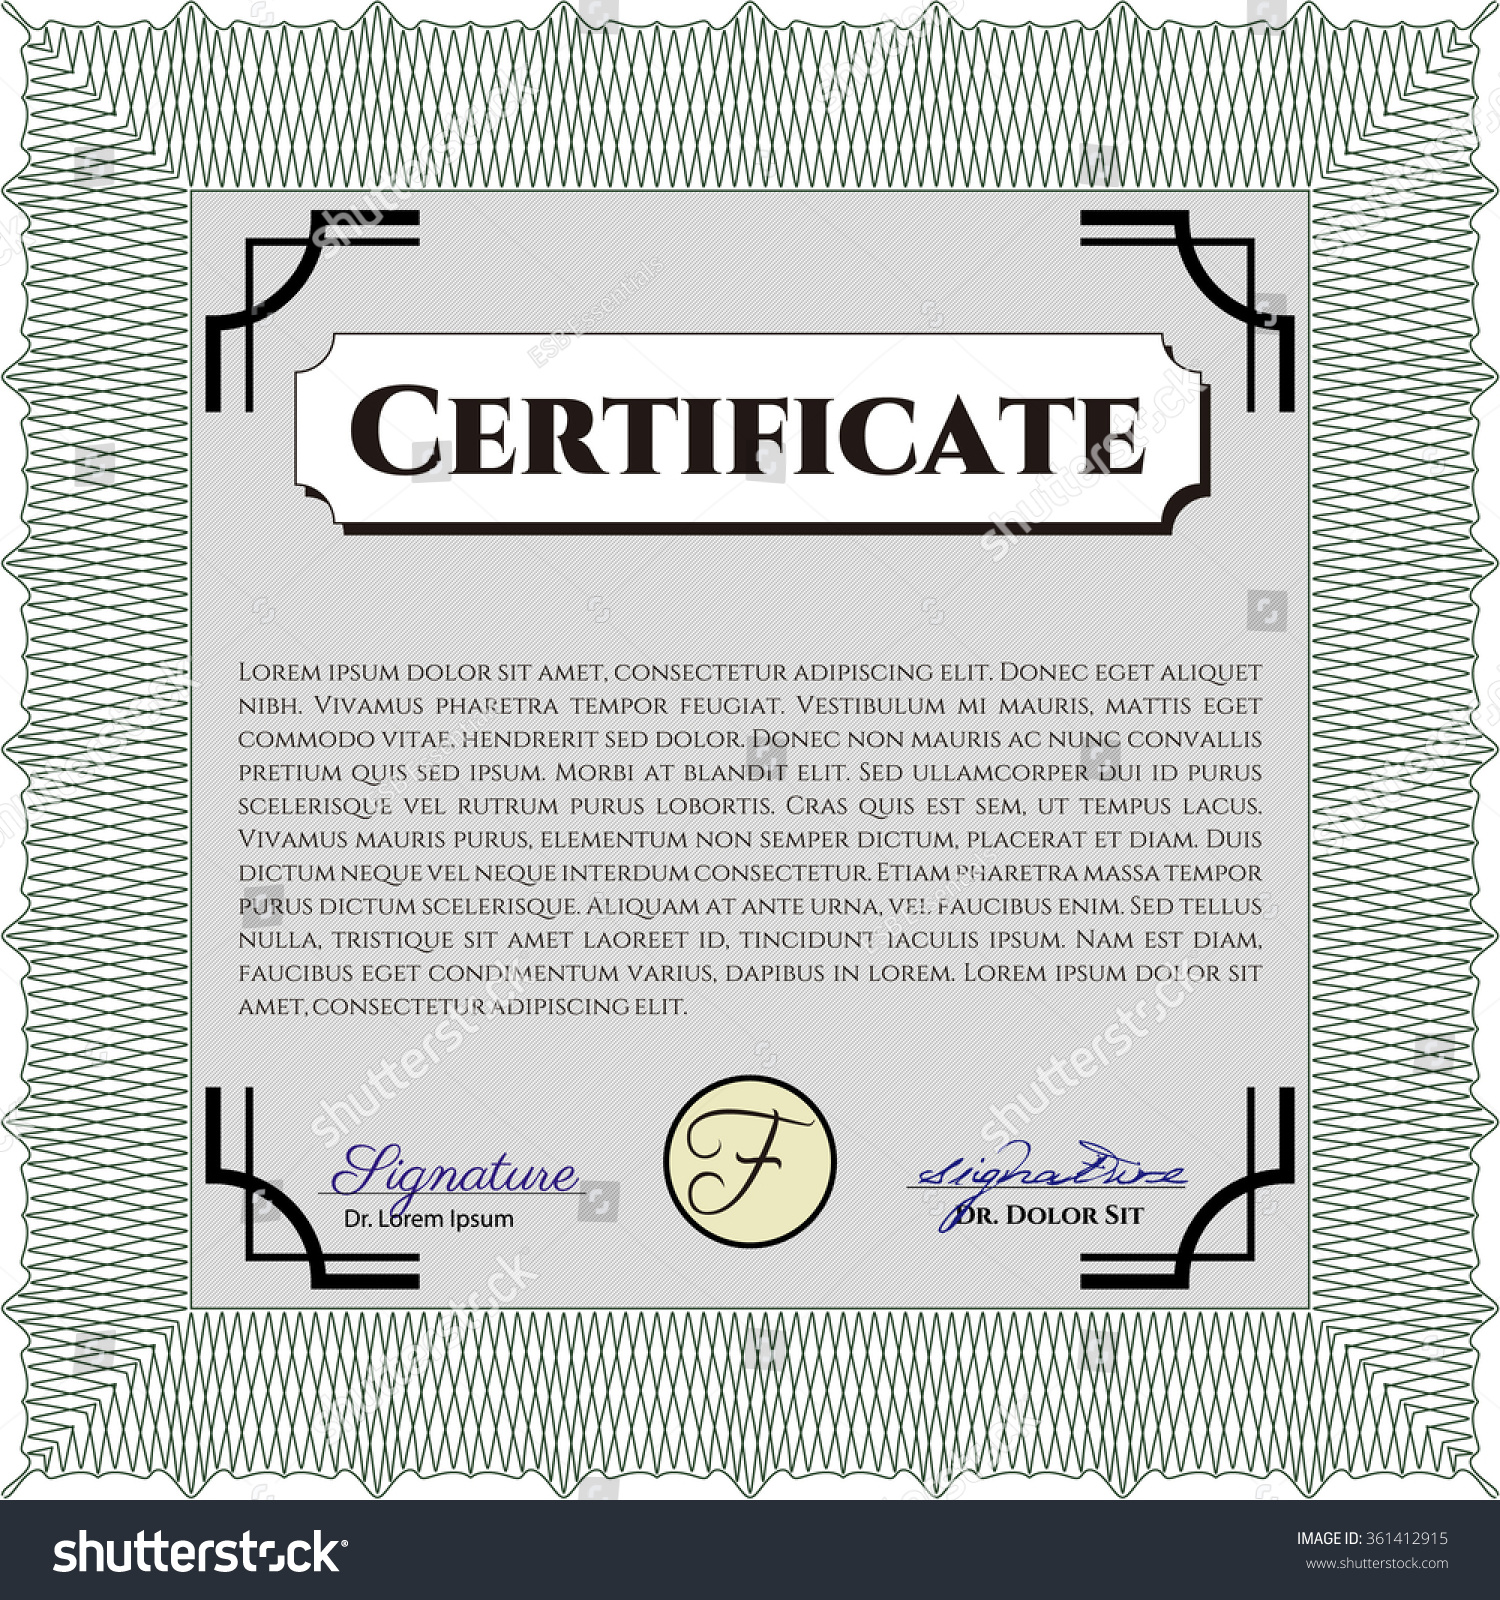 Certificate template diploma template lovely design stock vector certificate template or diploma template lovely design with guilloche pattern vector illustration xflitez Image collections